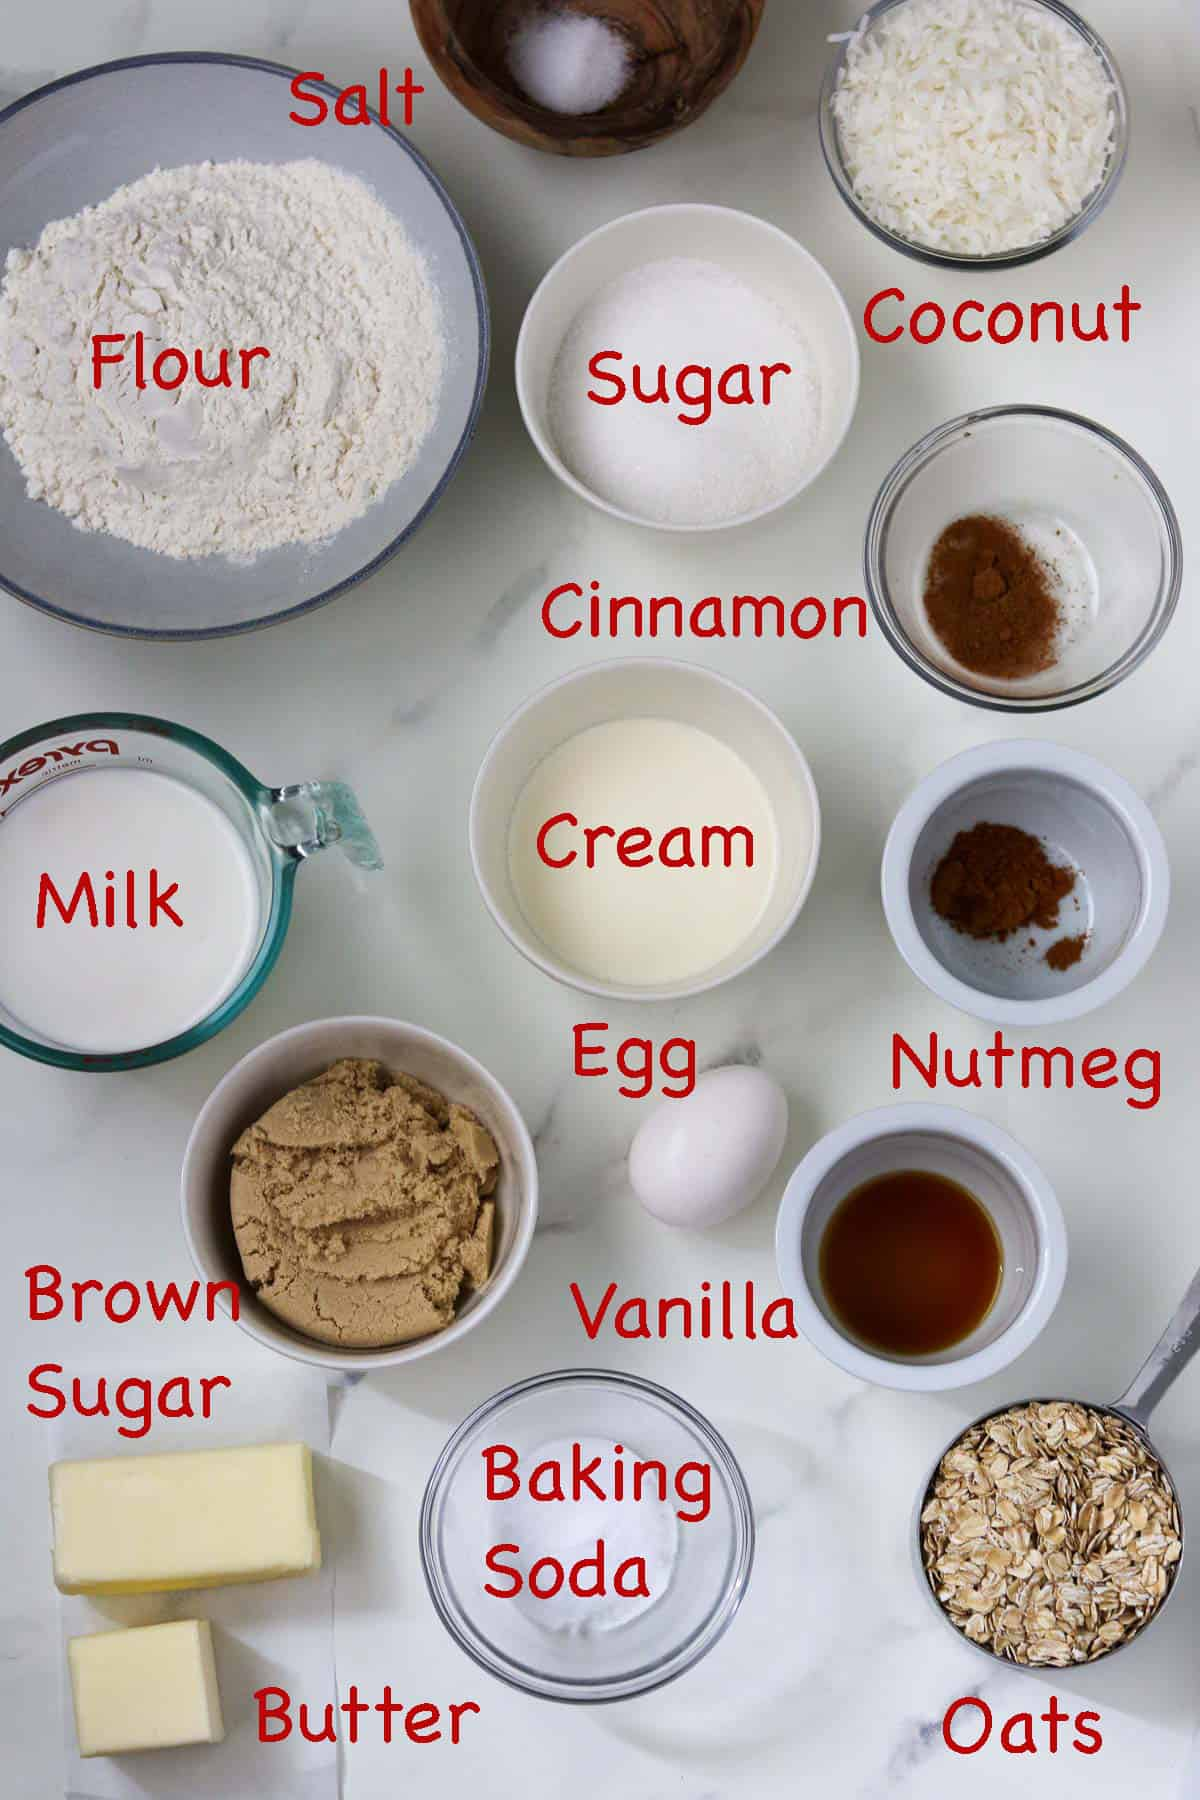 Labeled ingredients for Danish Dream Cake.